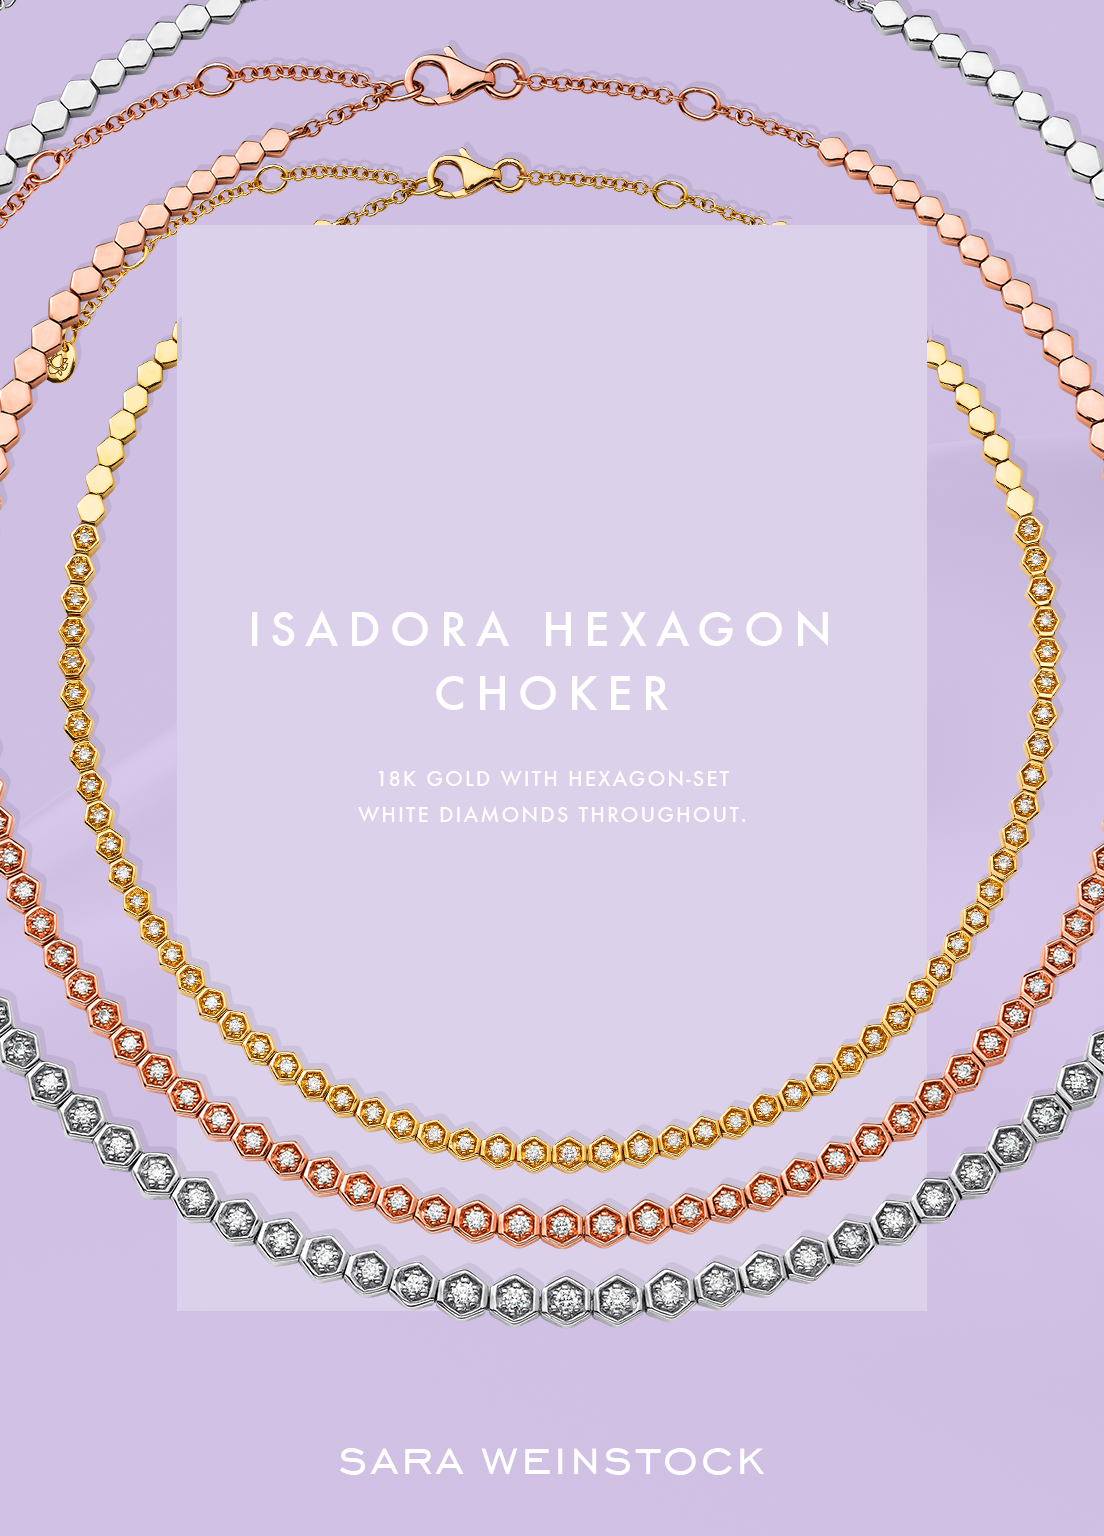 Isadora Hexagon Choker